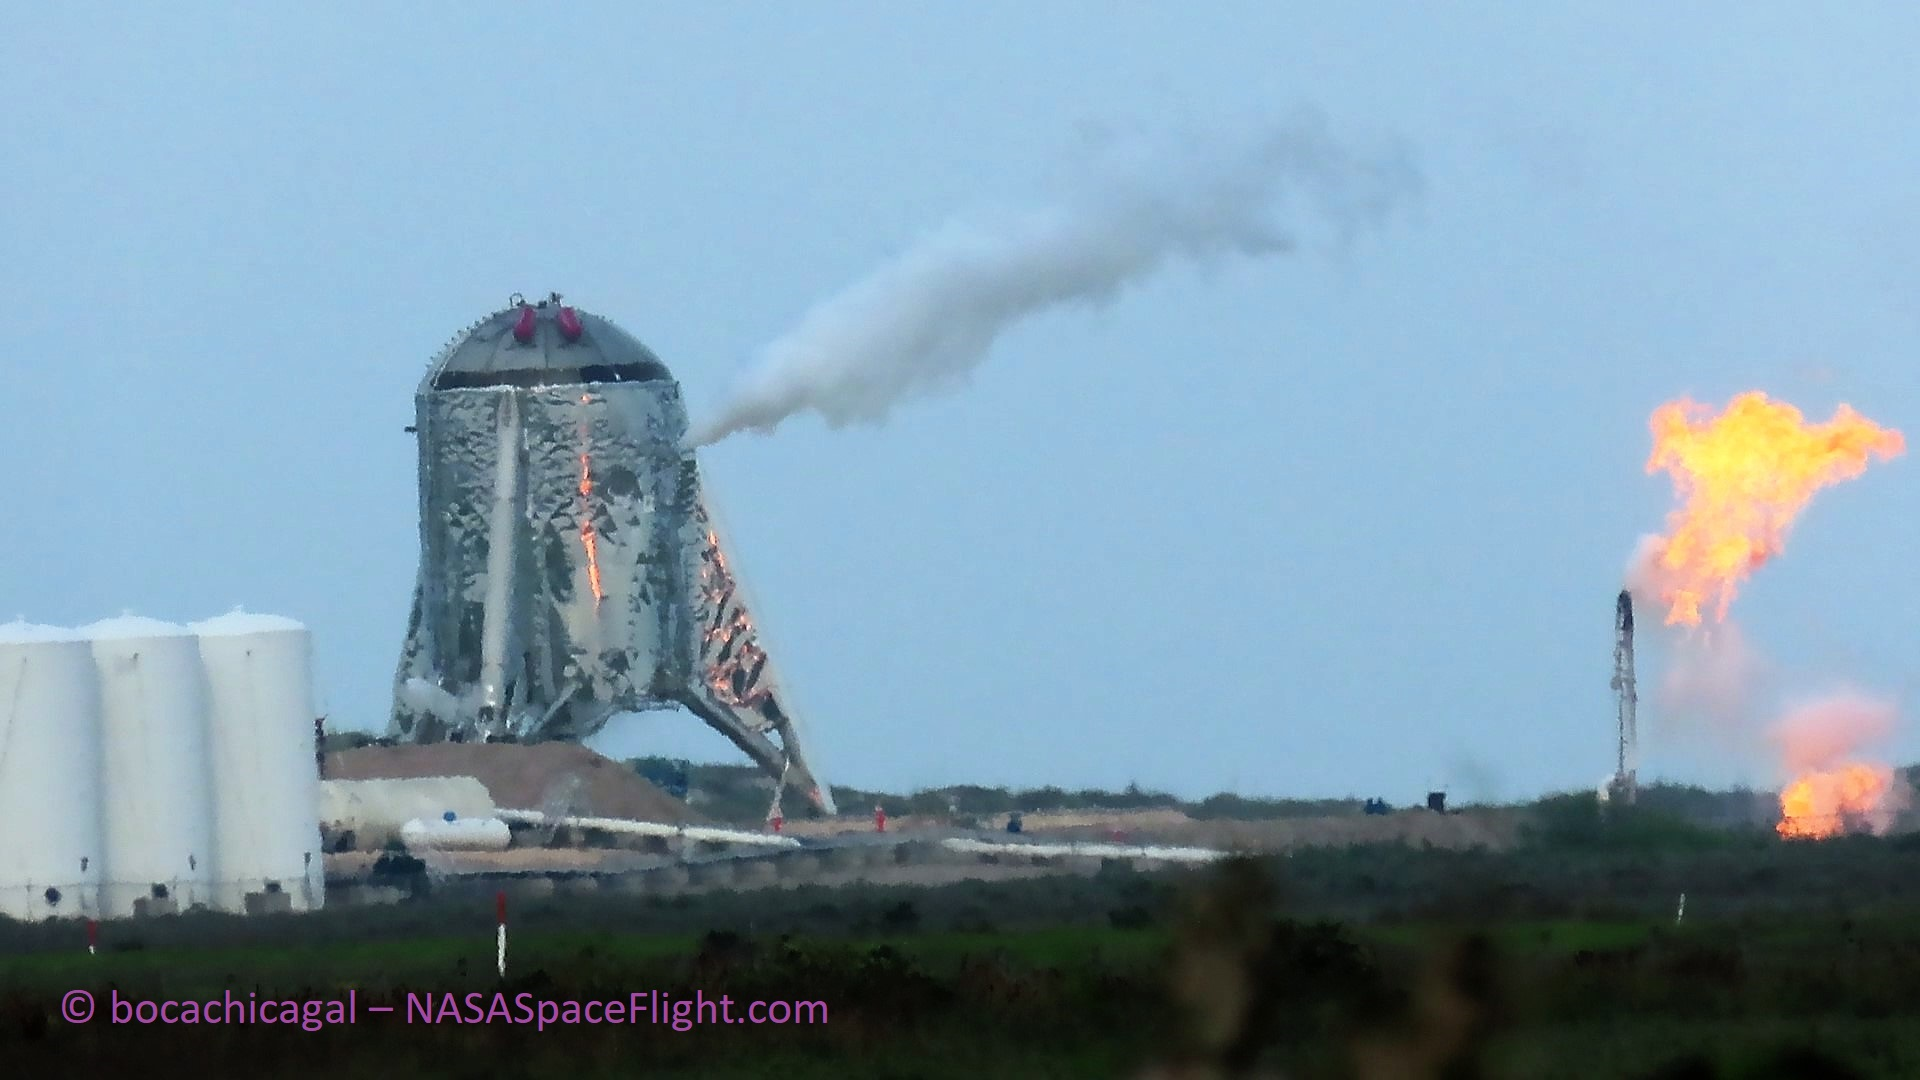 Boca Chica Starhopper testing 033019 (NASASpaceflight – bocachicagal) 2